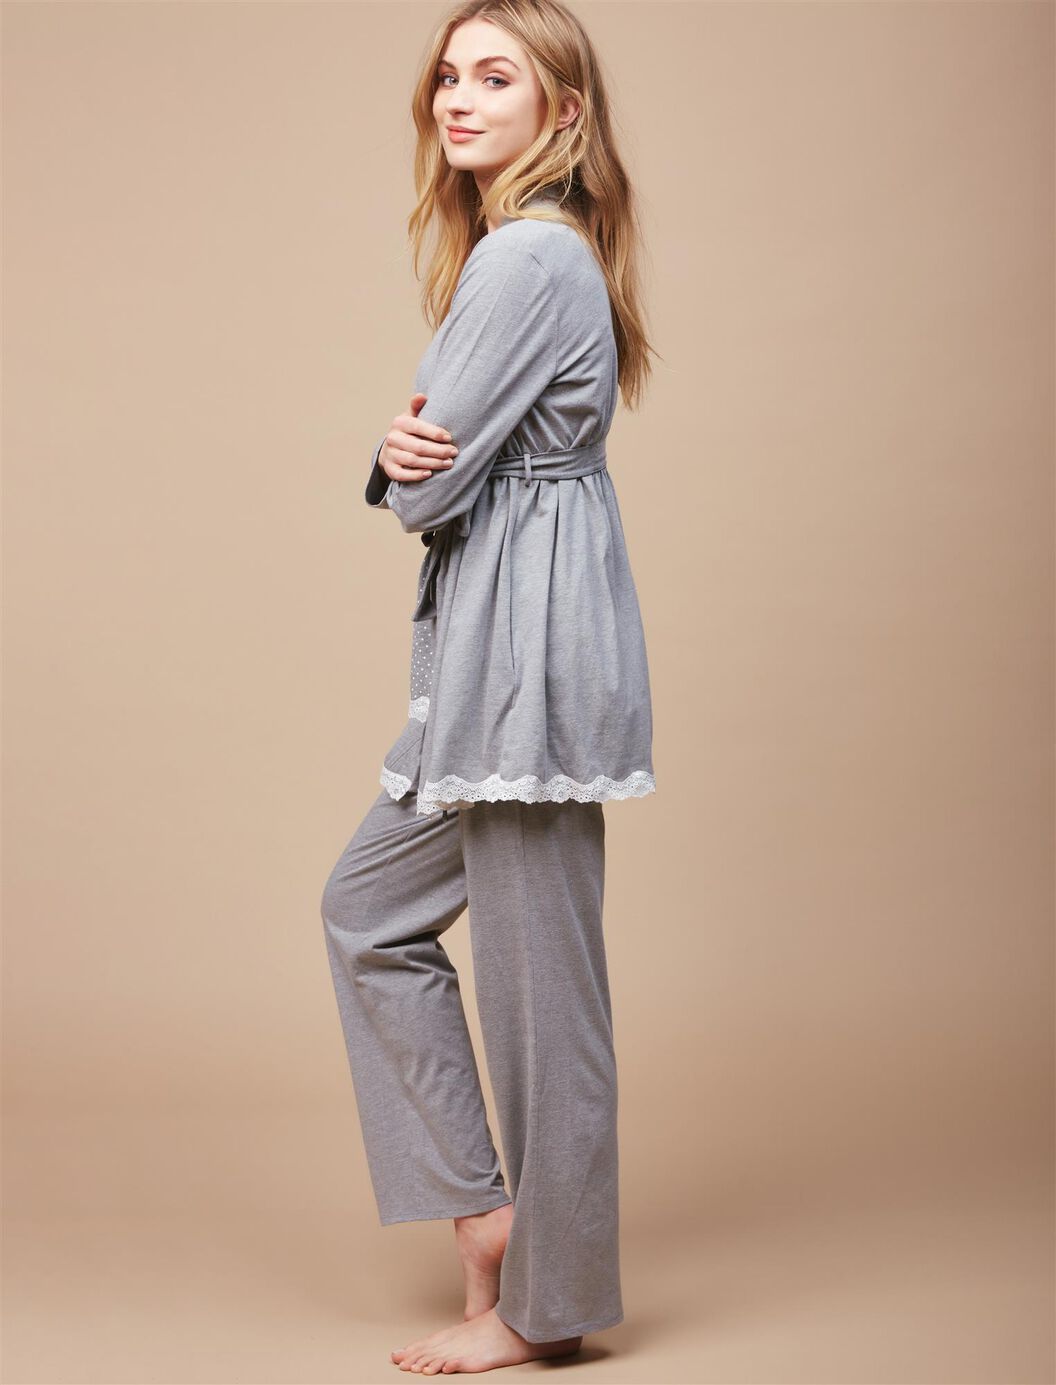 Lace Trim 3 Piece Maternity Pajama Set at Motherhood Maternity in Victor, NY | Tuggl